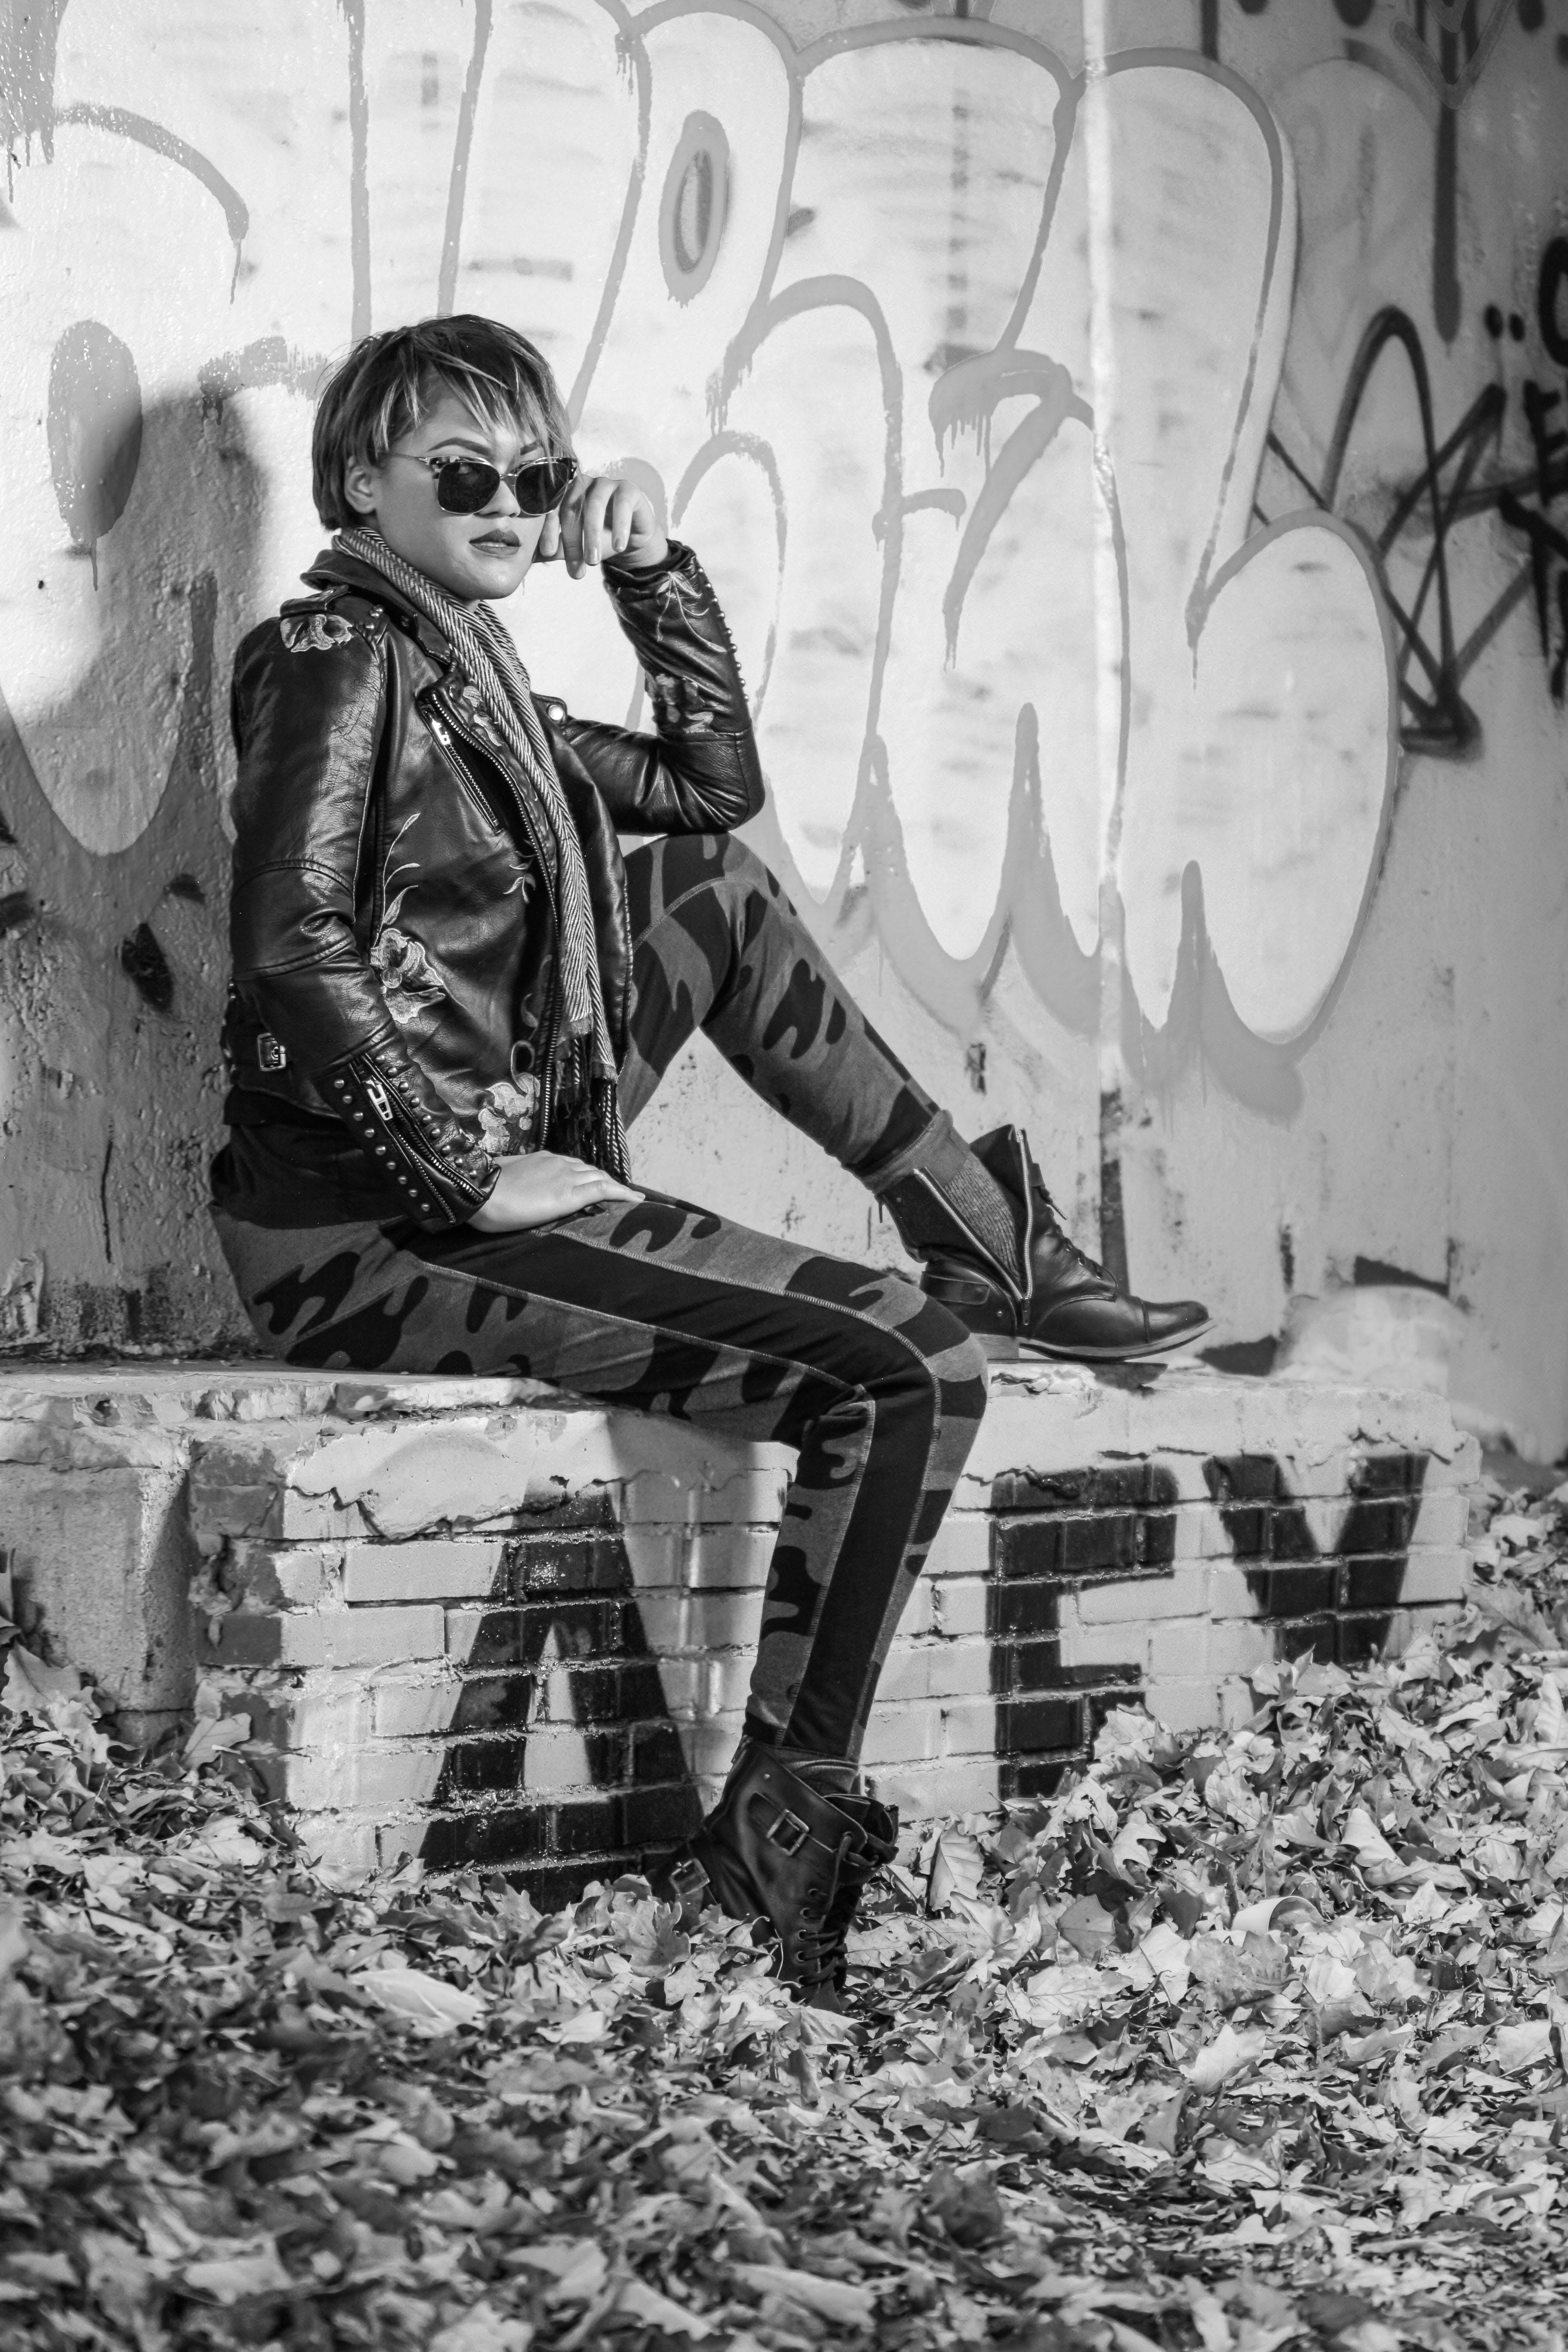 Grayscale Photo of Woman Sitting on Concrete